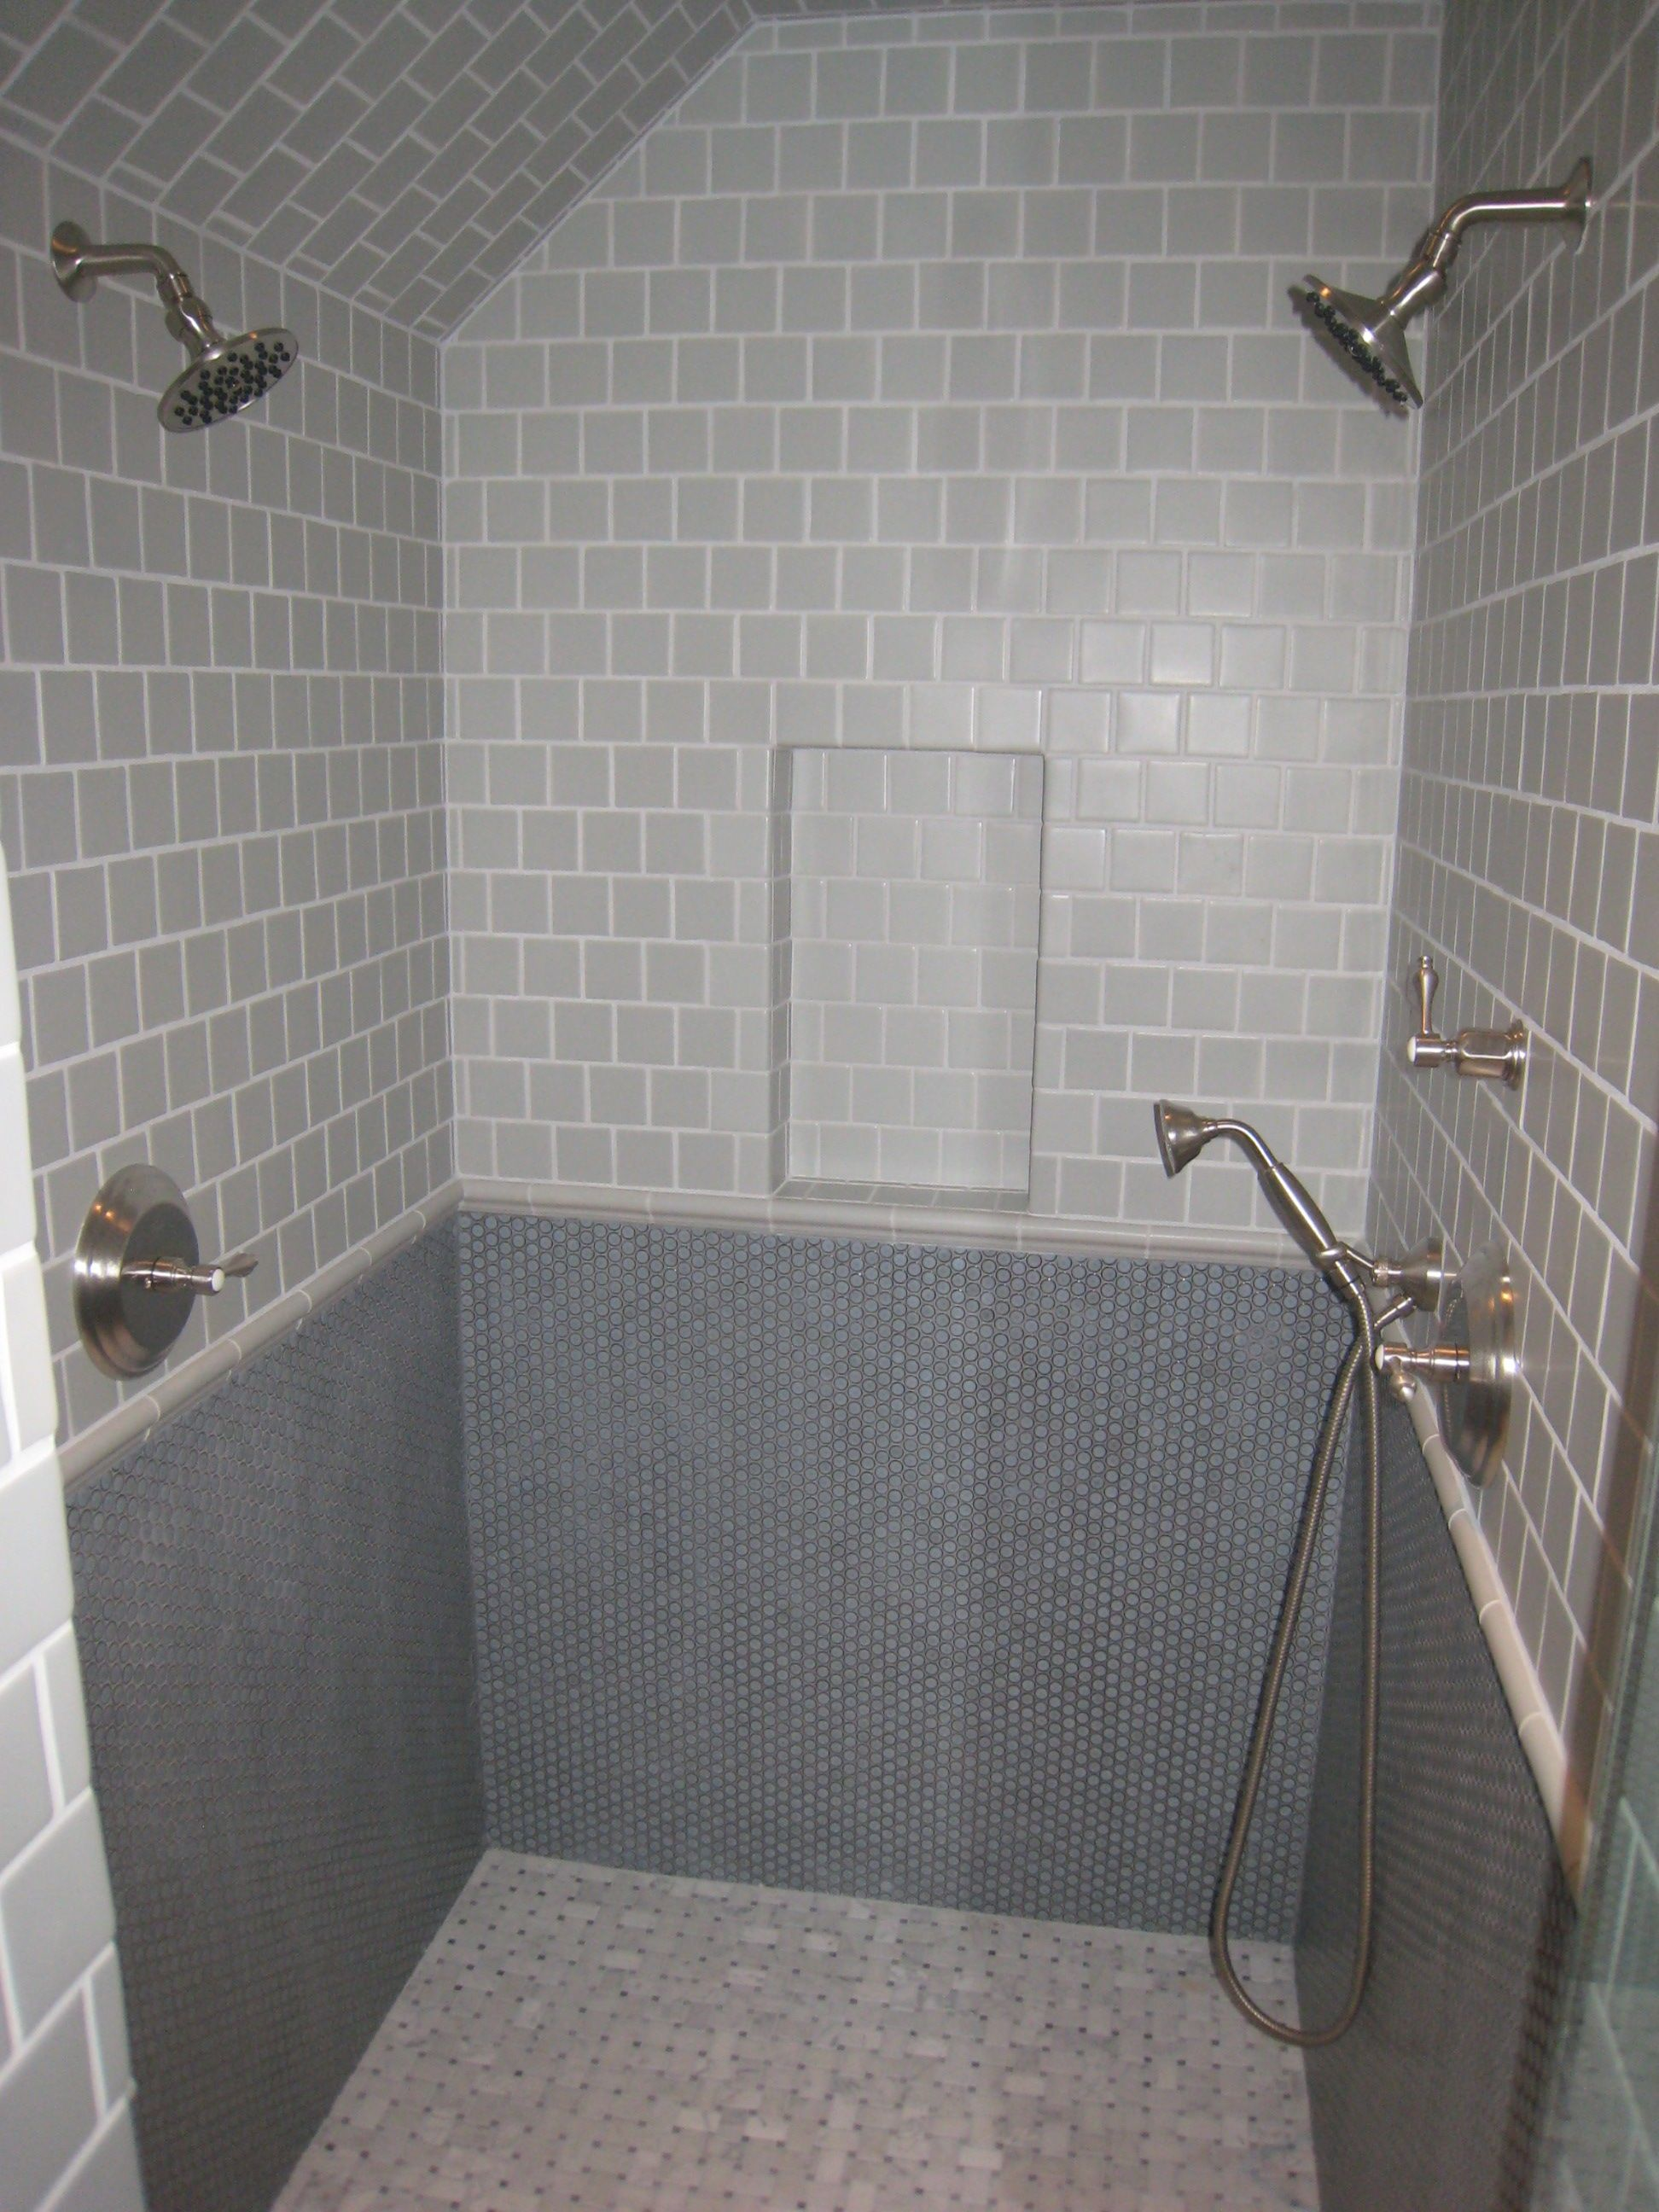 Bathroom tile wainscoting ideas